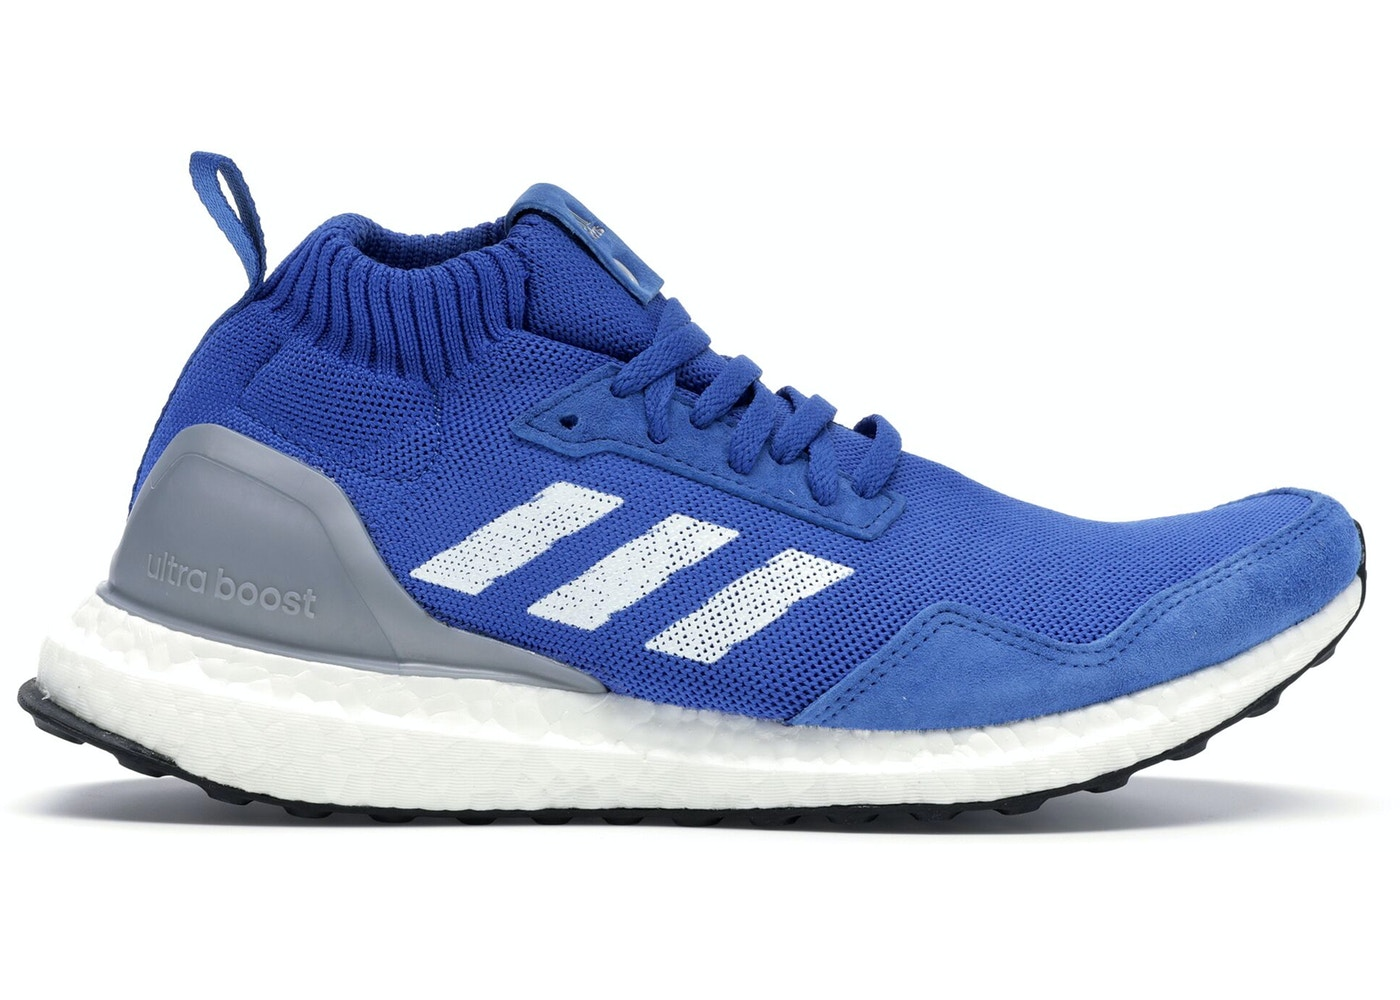 8cfd694fa45 adidas Ultra Boost Mid Run Thru Time - BY3056